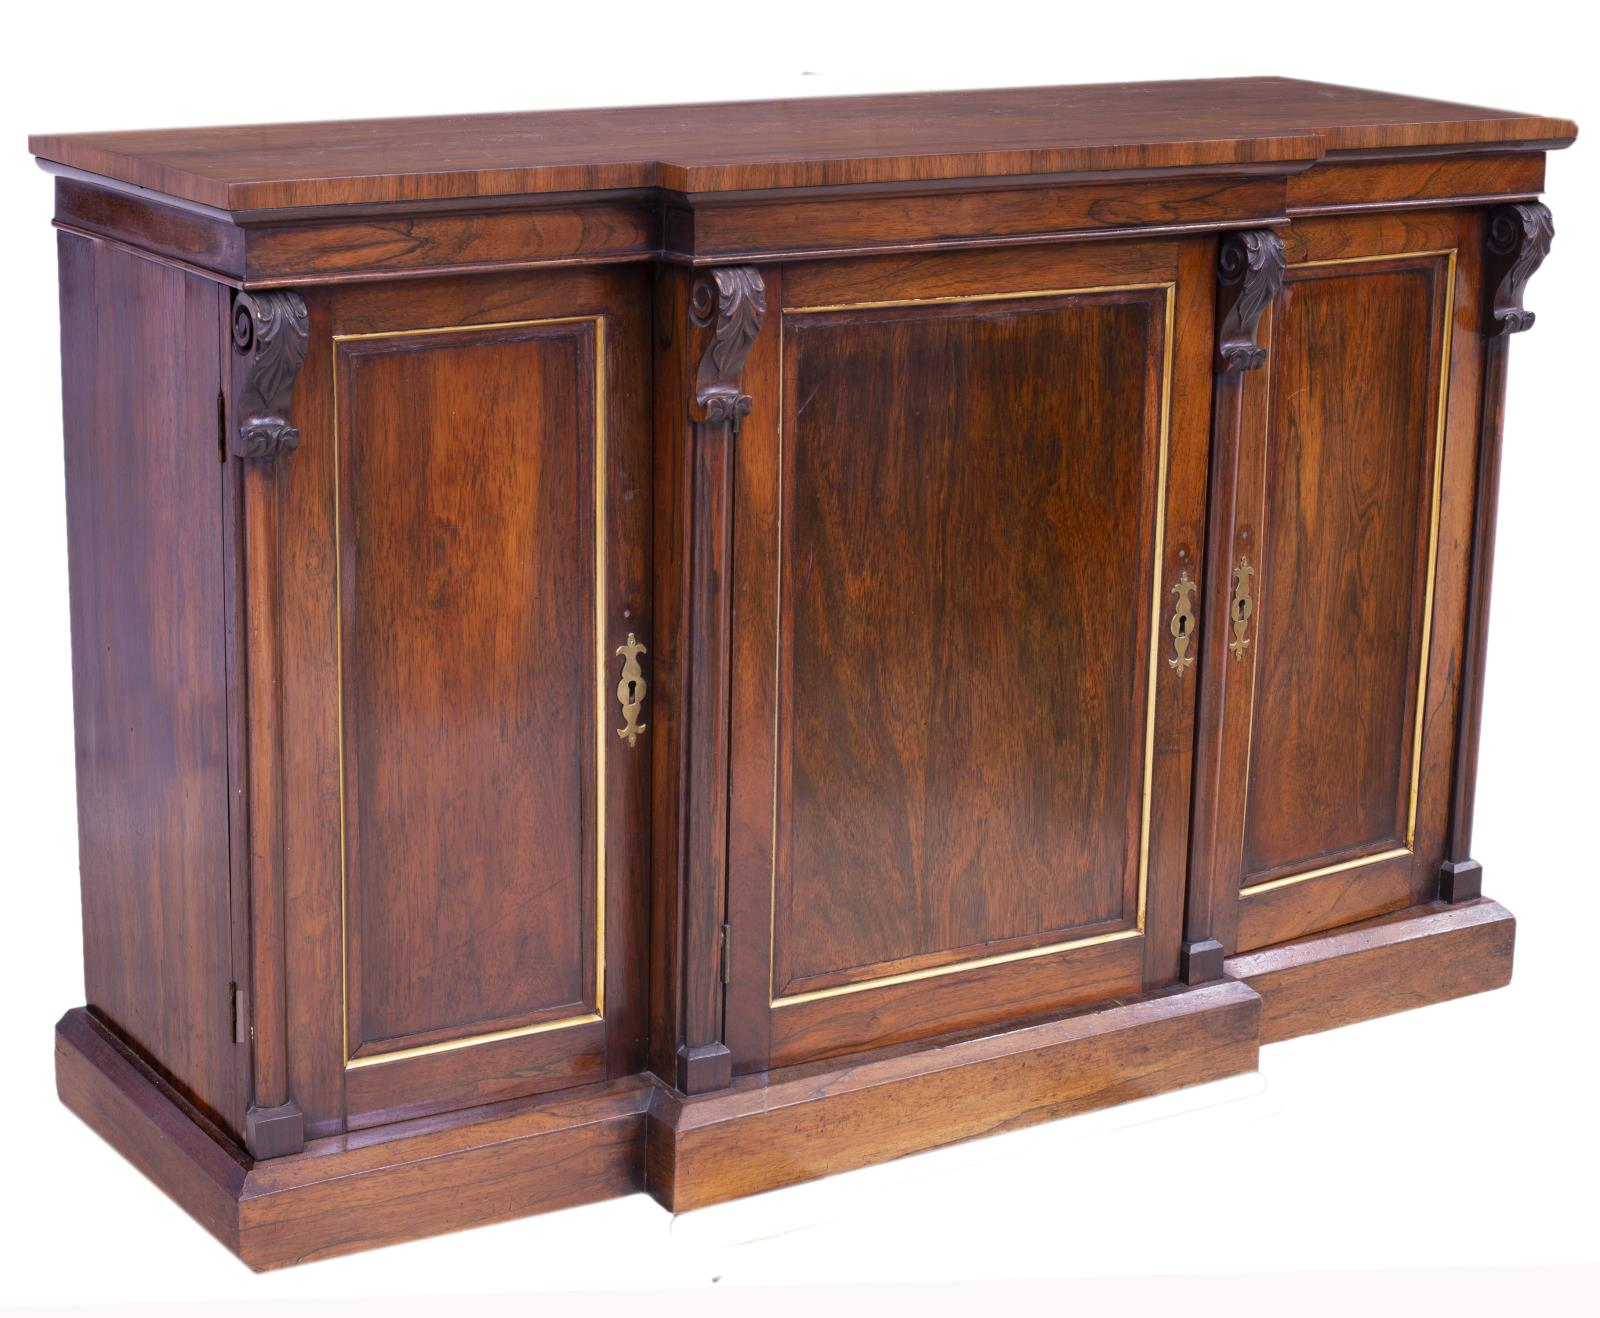 Keeney Sideboards Pertaining To Latest American Mahogany Breakfront Sideboard – High End Estates (View 7 of 20)